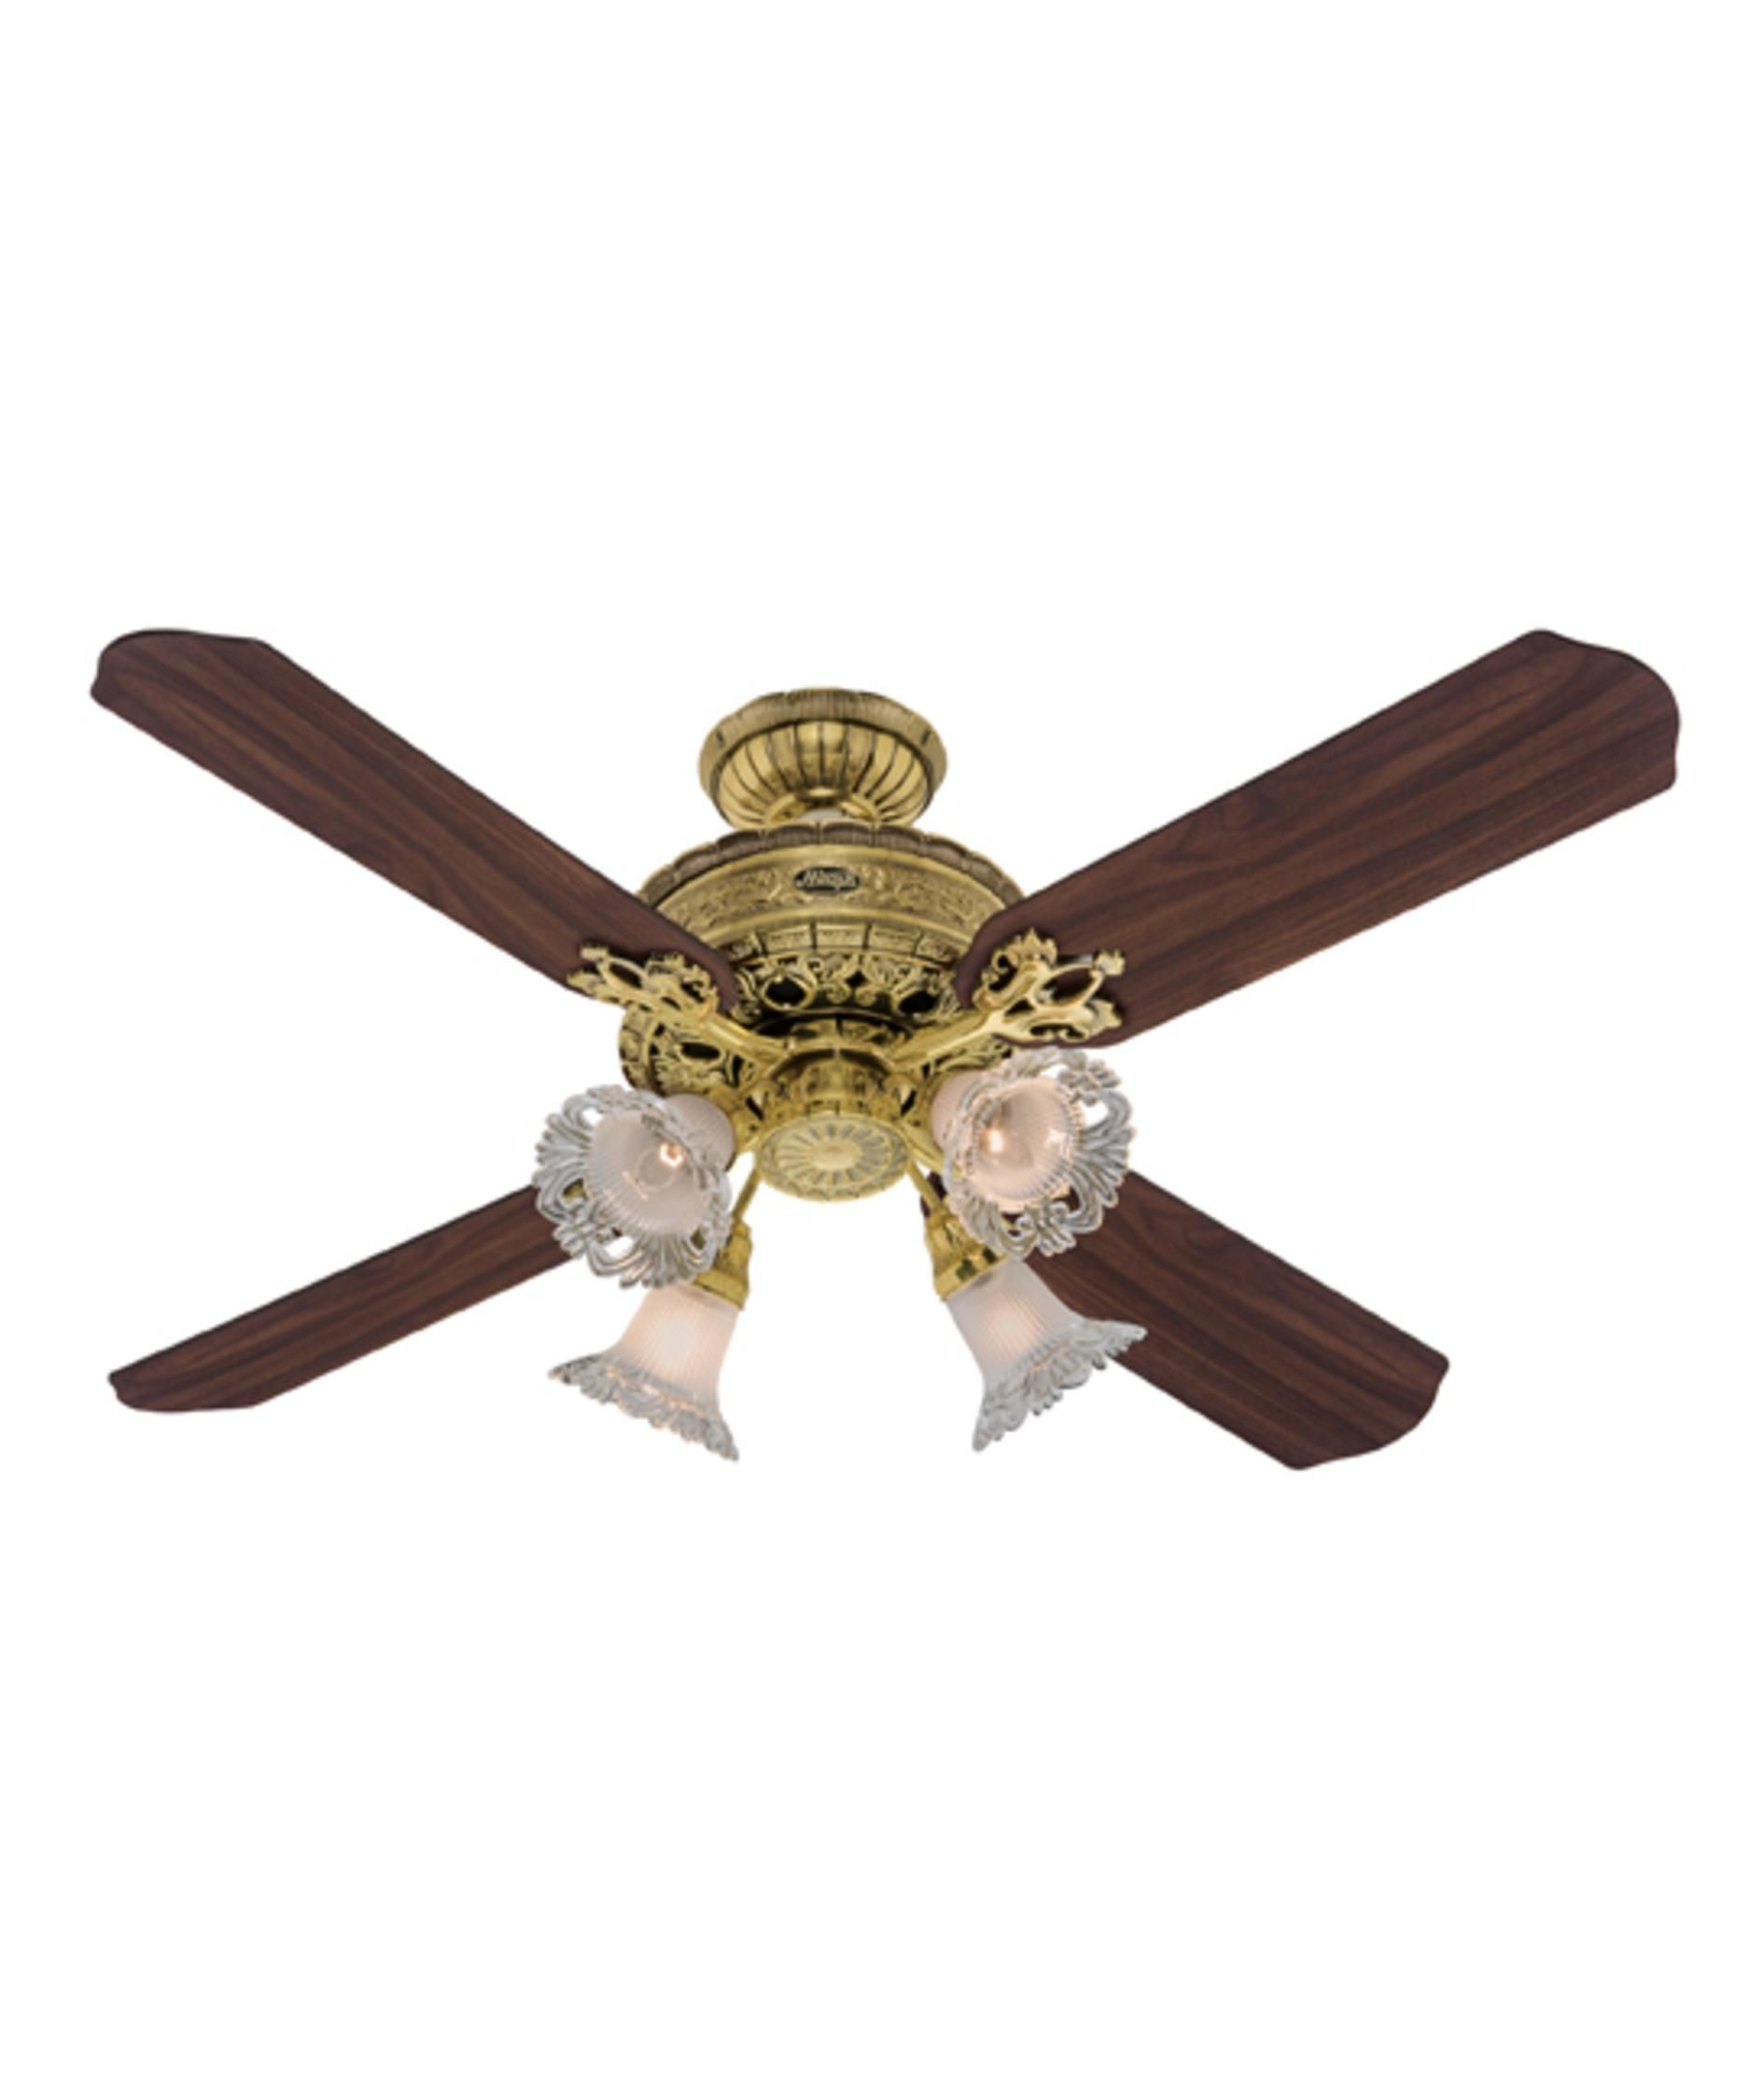 Hunter fan westminster light kit httponlinecompliancefo hunter fan westminster light kit hunter fan has really been in the industry of creating quality made ceiling fan hunter was originally made in america b aloadofball Choice Image